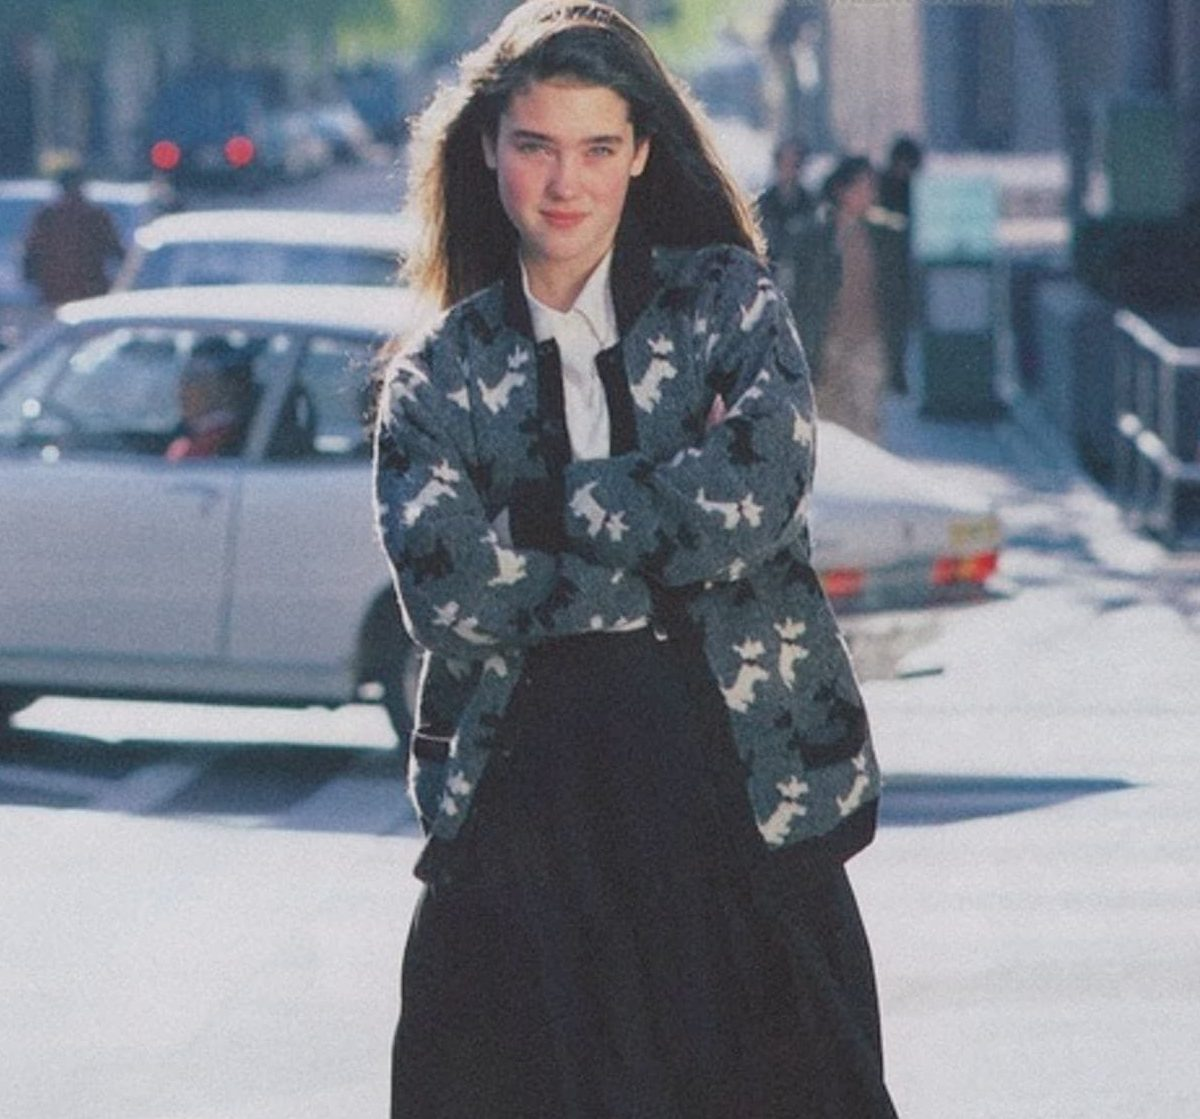 young jennifer connelly in long black skirt and sweater photo u1 e1610099619759 20 Things You Probably Didn't Know About Jennifer Connelly